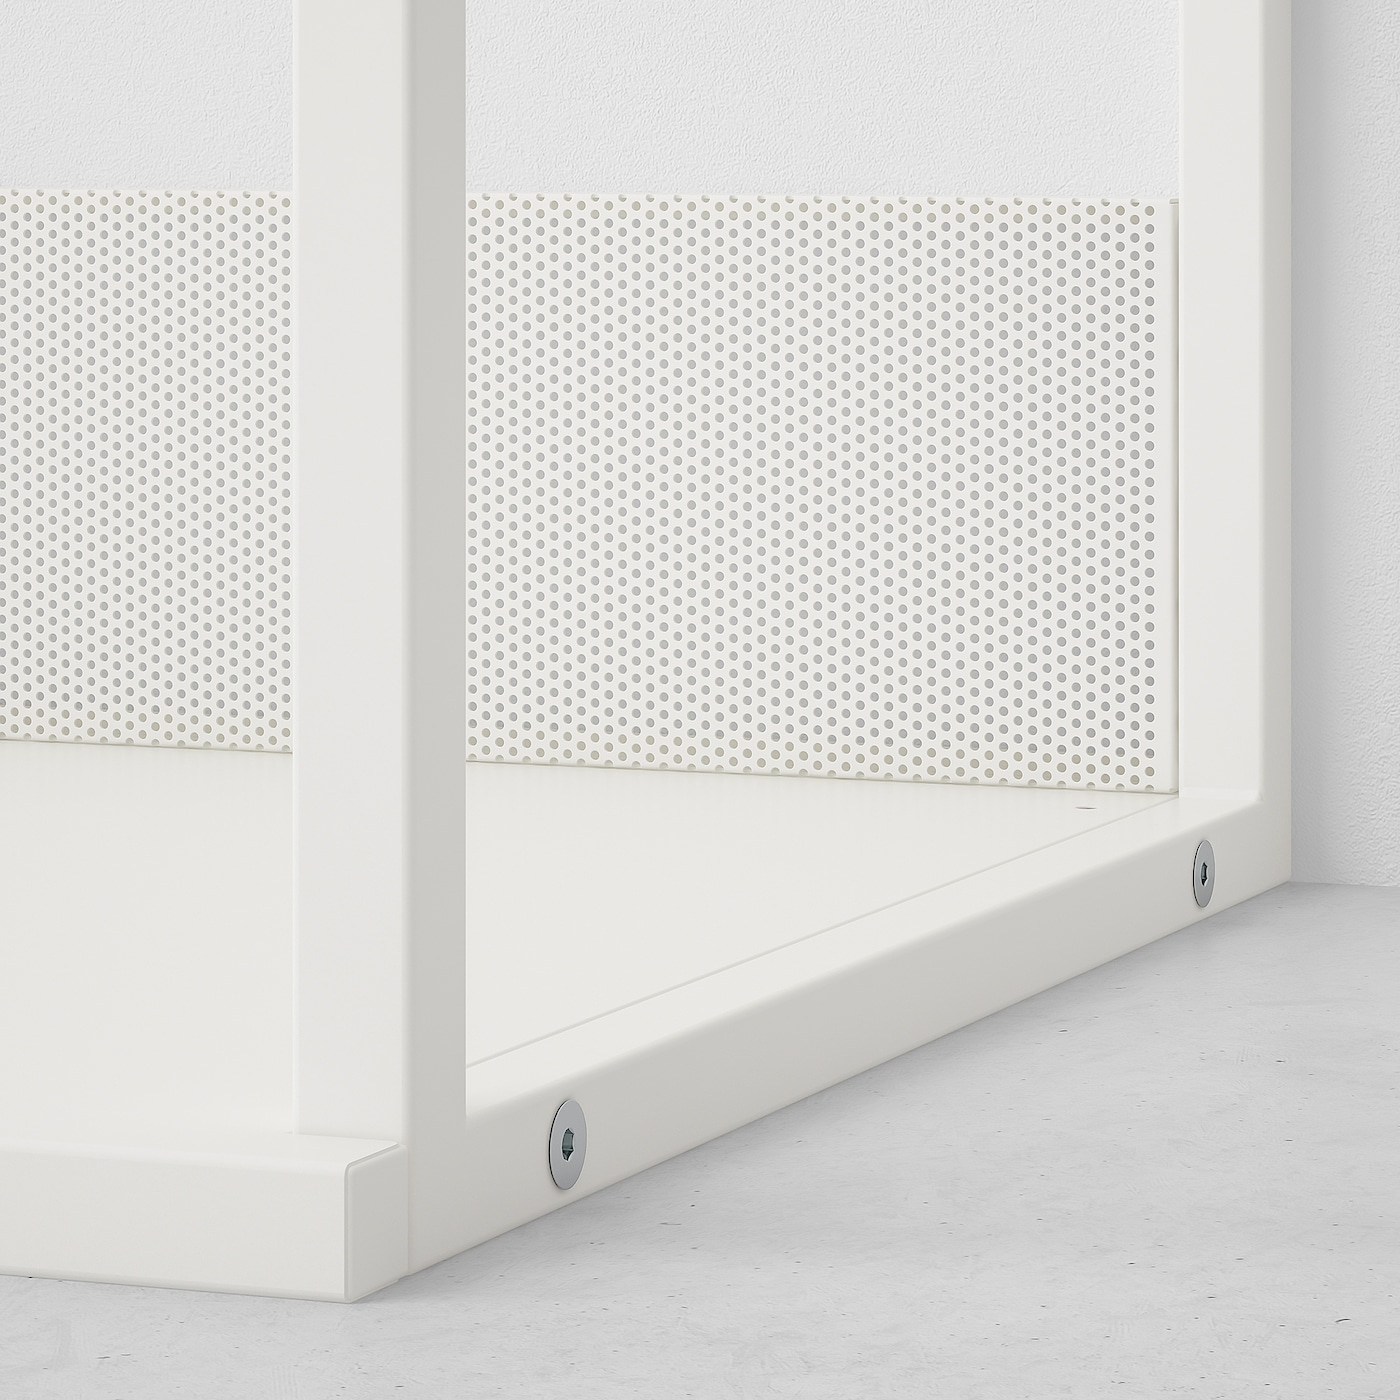 PLATSA Open shelving unit, white, 60x40x60 cm